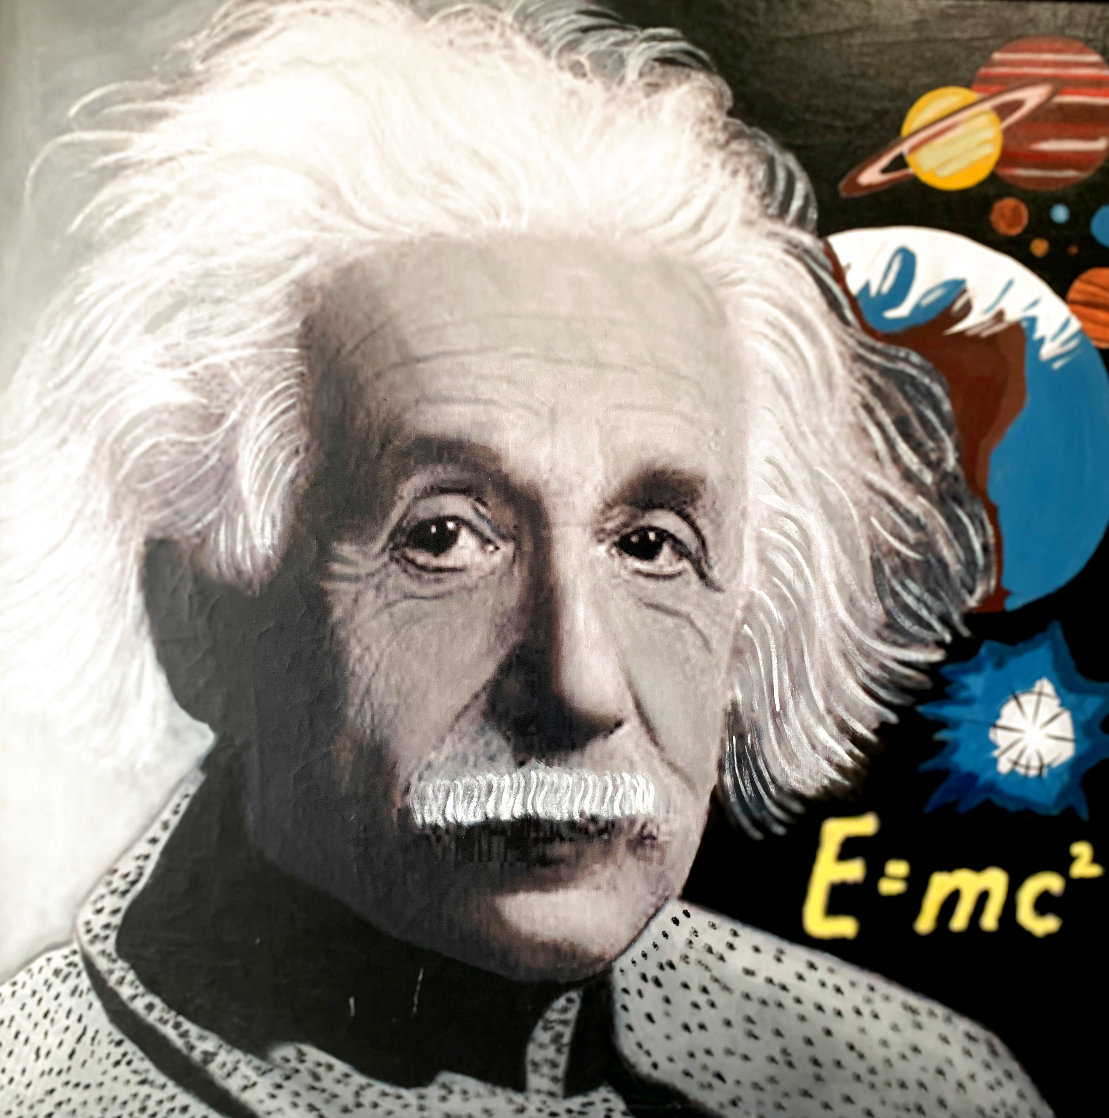 Albert Einstein E=MC2 Unique 48x48 Super Huge Original Painting by Steve Kaufman